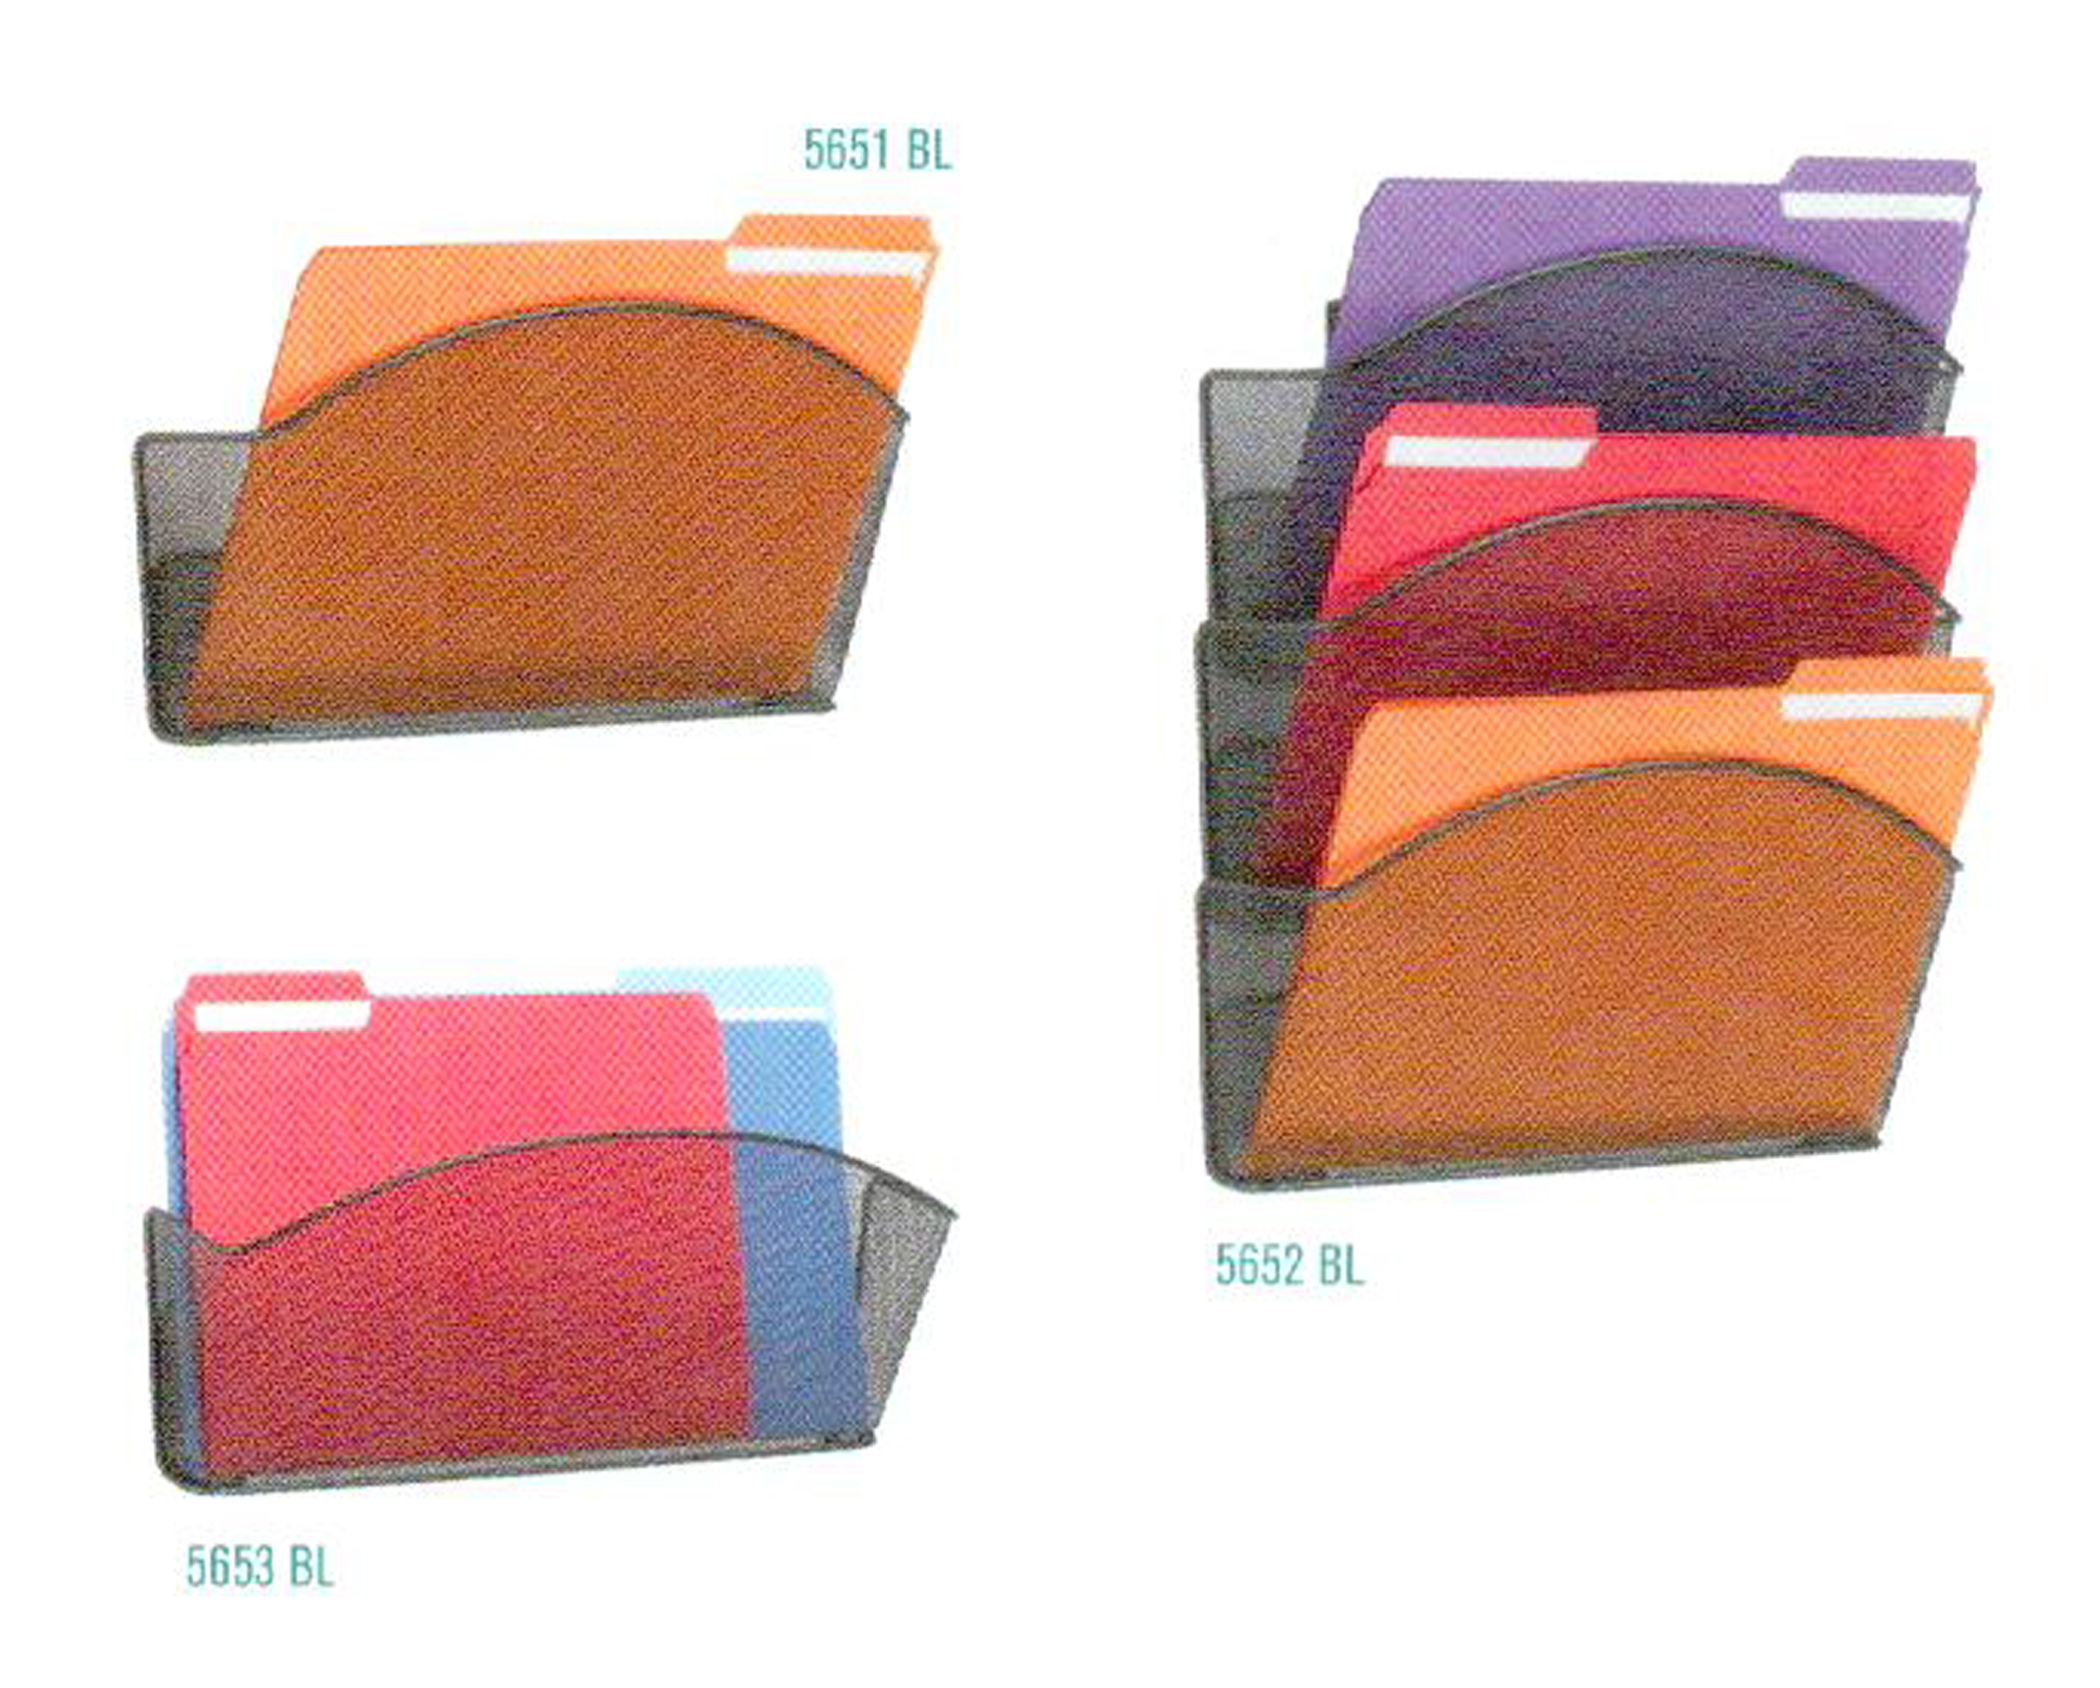 Safco Onyx Mesh Wall Pockets Letter Size Legal Sized